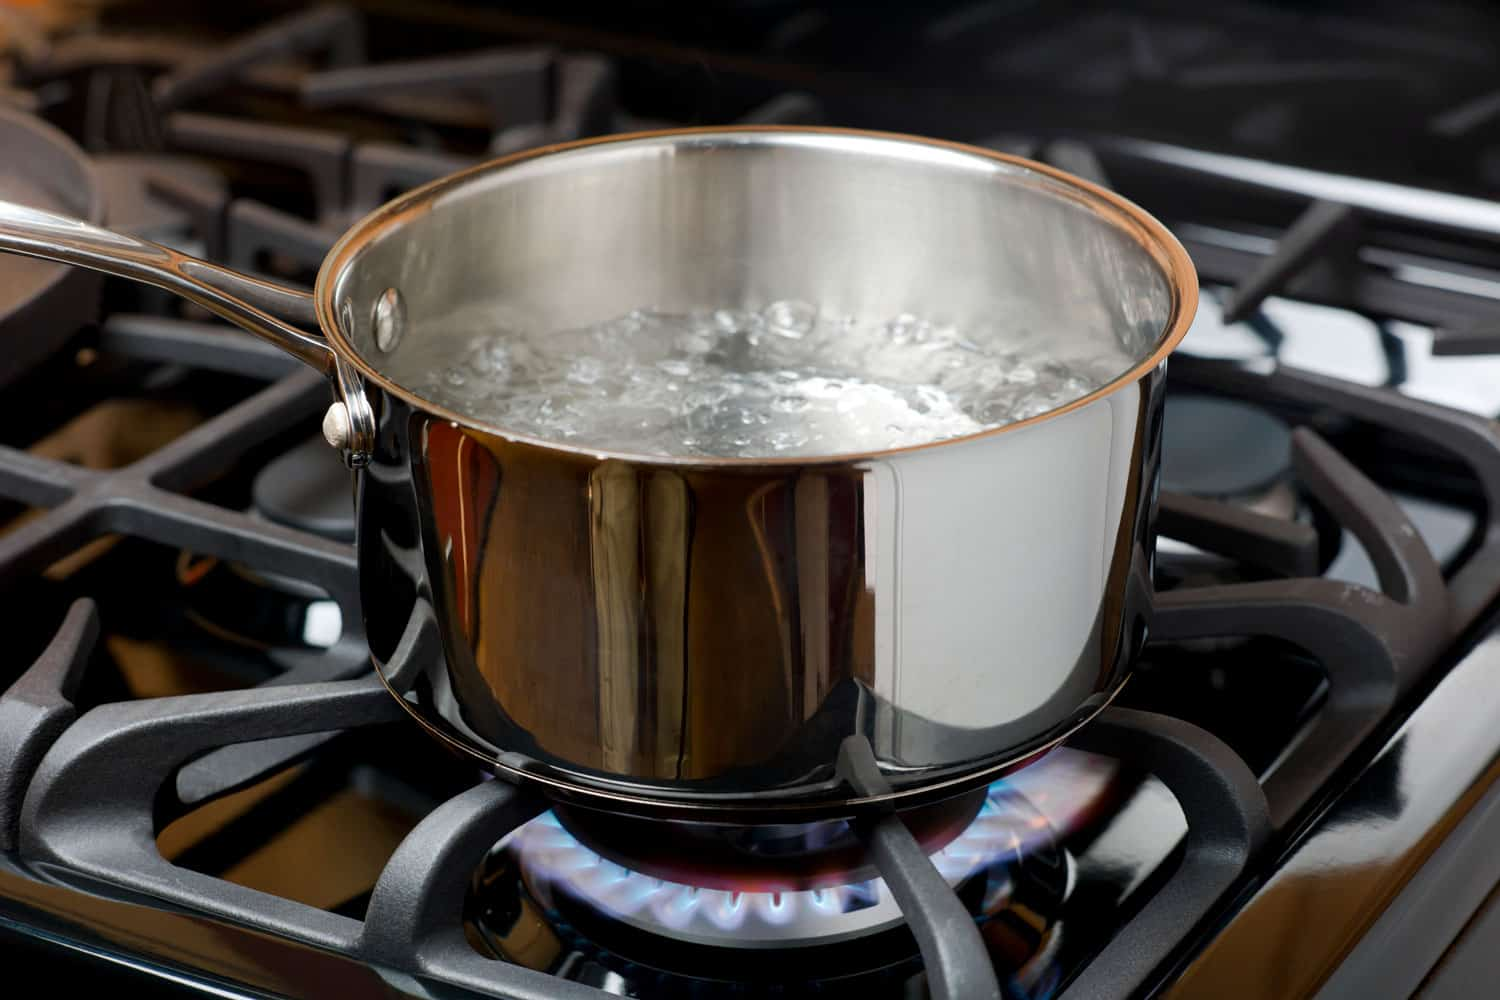 Water bubbles and boils on a gas stove or range in a home kitchen